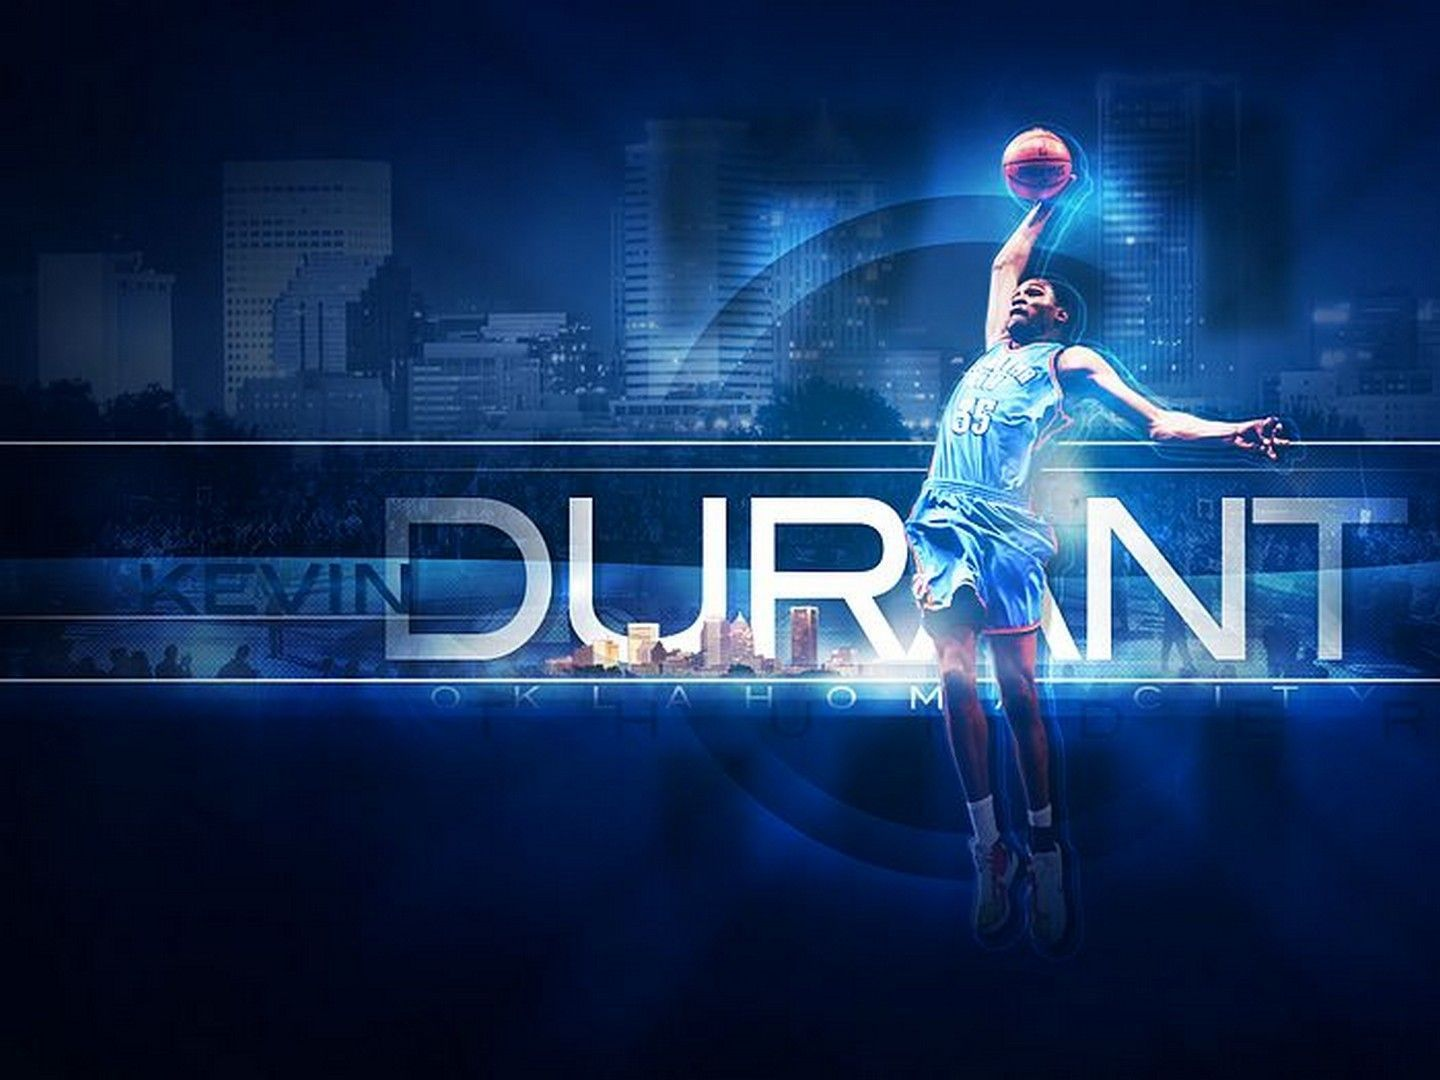 Kevin Durant Shoes Wallpaper